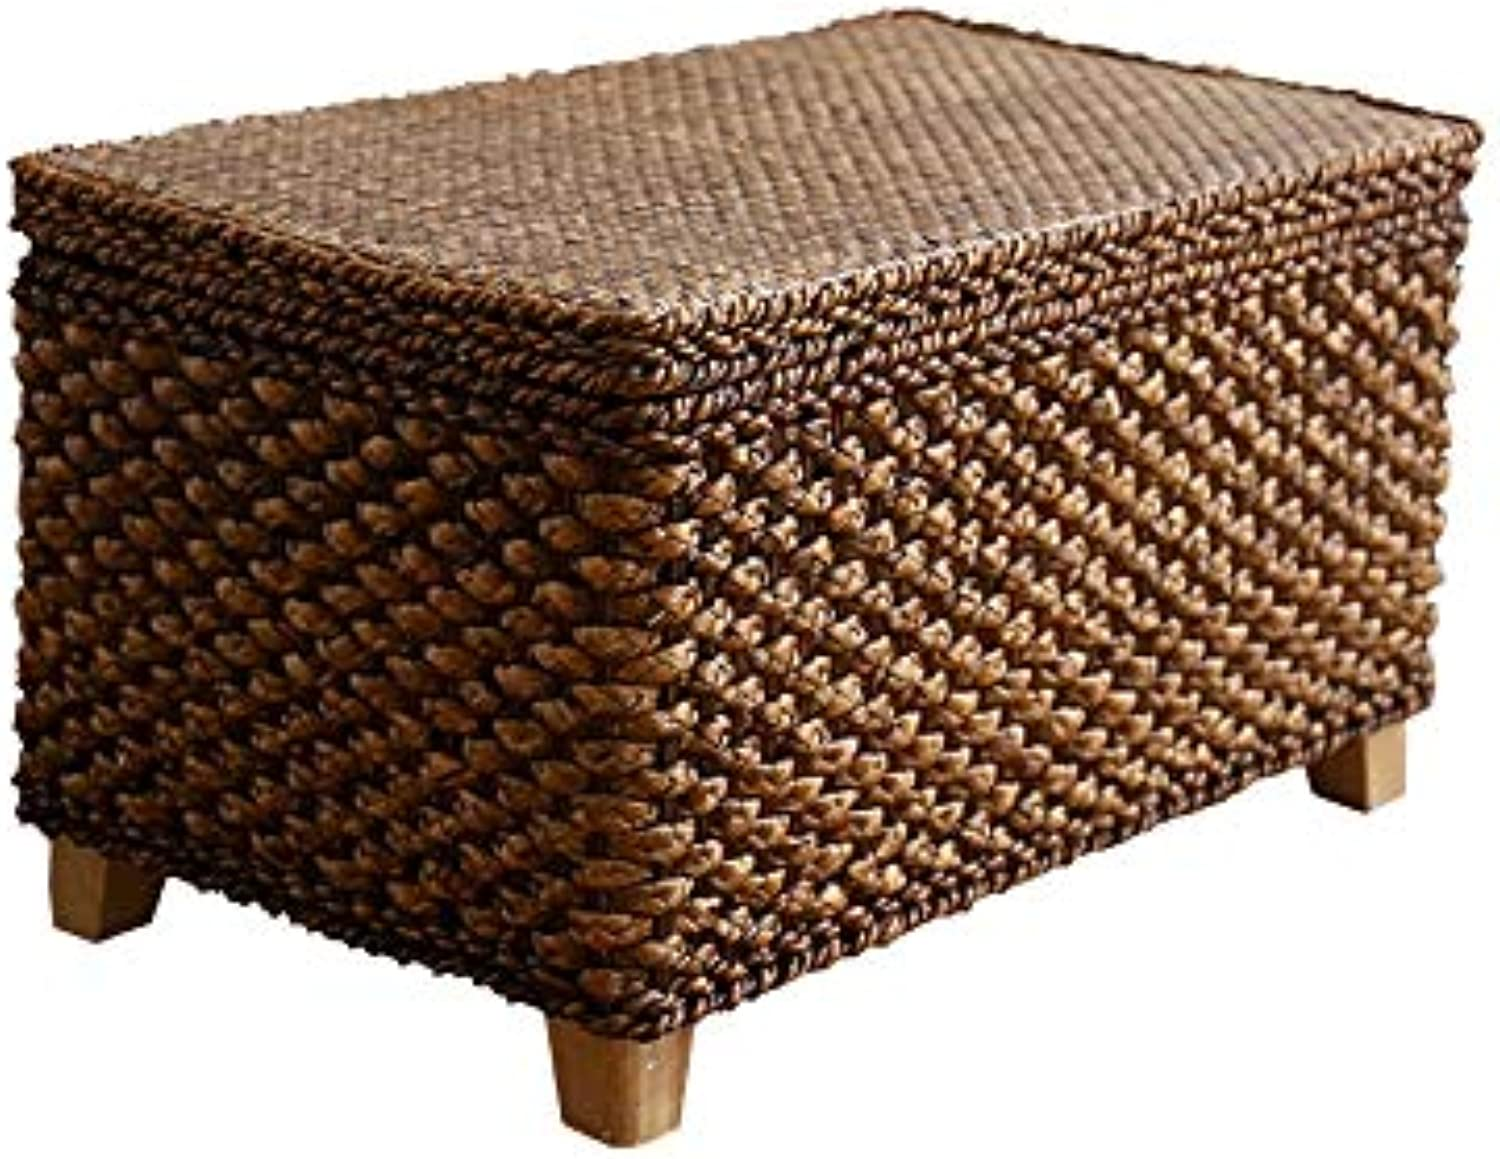 Wei Zhe- Storage Stool Rattan Straw Multi-Function Storage Stool Change shoes Stool Footrest Sofa Square Stool Can Sit People Finishing Storage Box Can Withstand 150KG Household Storage Stool